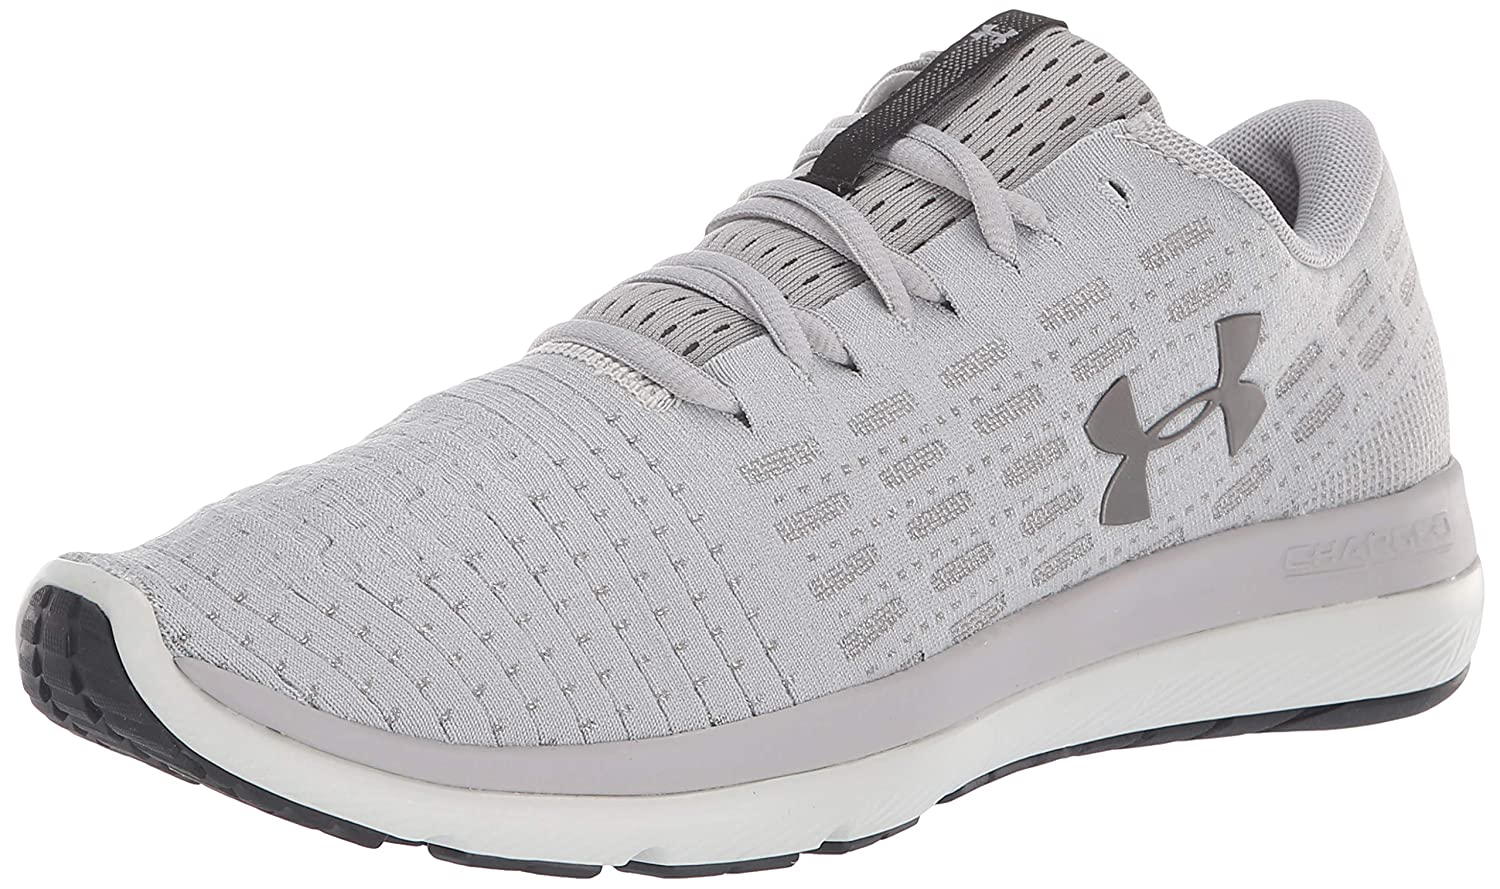 Under Armour Men's Threadborne Slingflex Sneaker